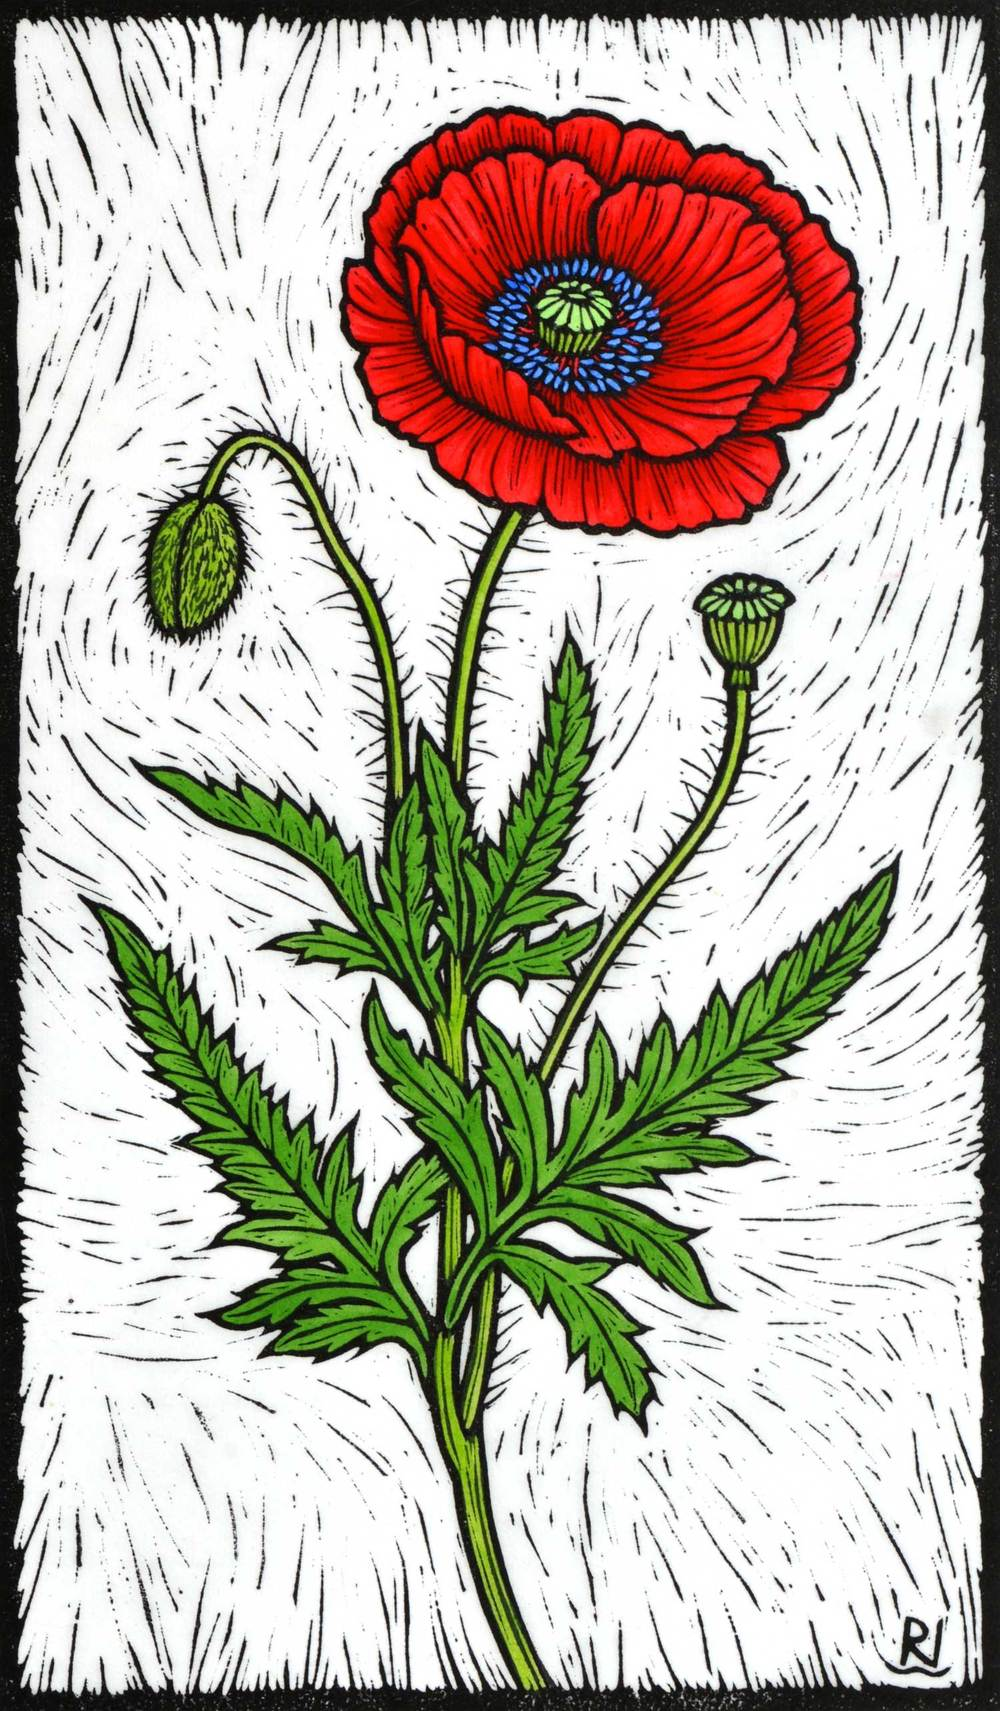 Flanders Poppy                                         33 x 19 cm    Edition of 50                    Hand Coloured Linocut on Handmade Japanese paper                $450